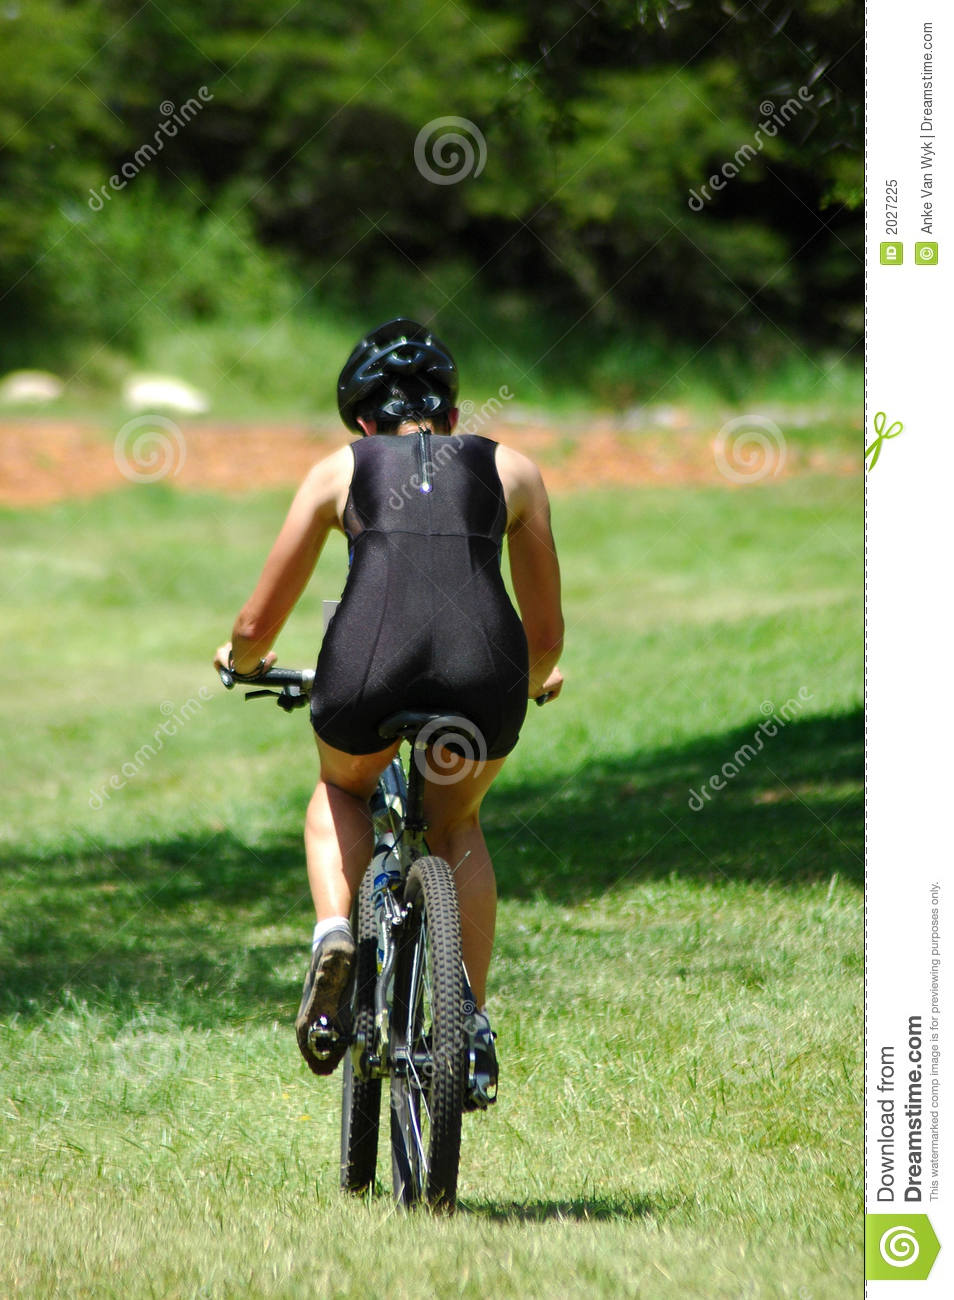 Cyclists body female Effect of